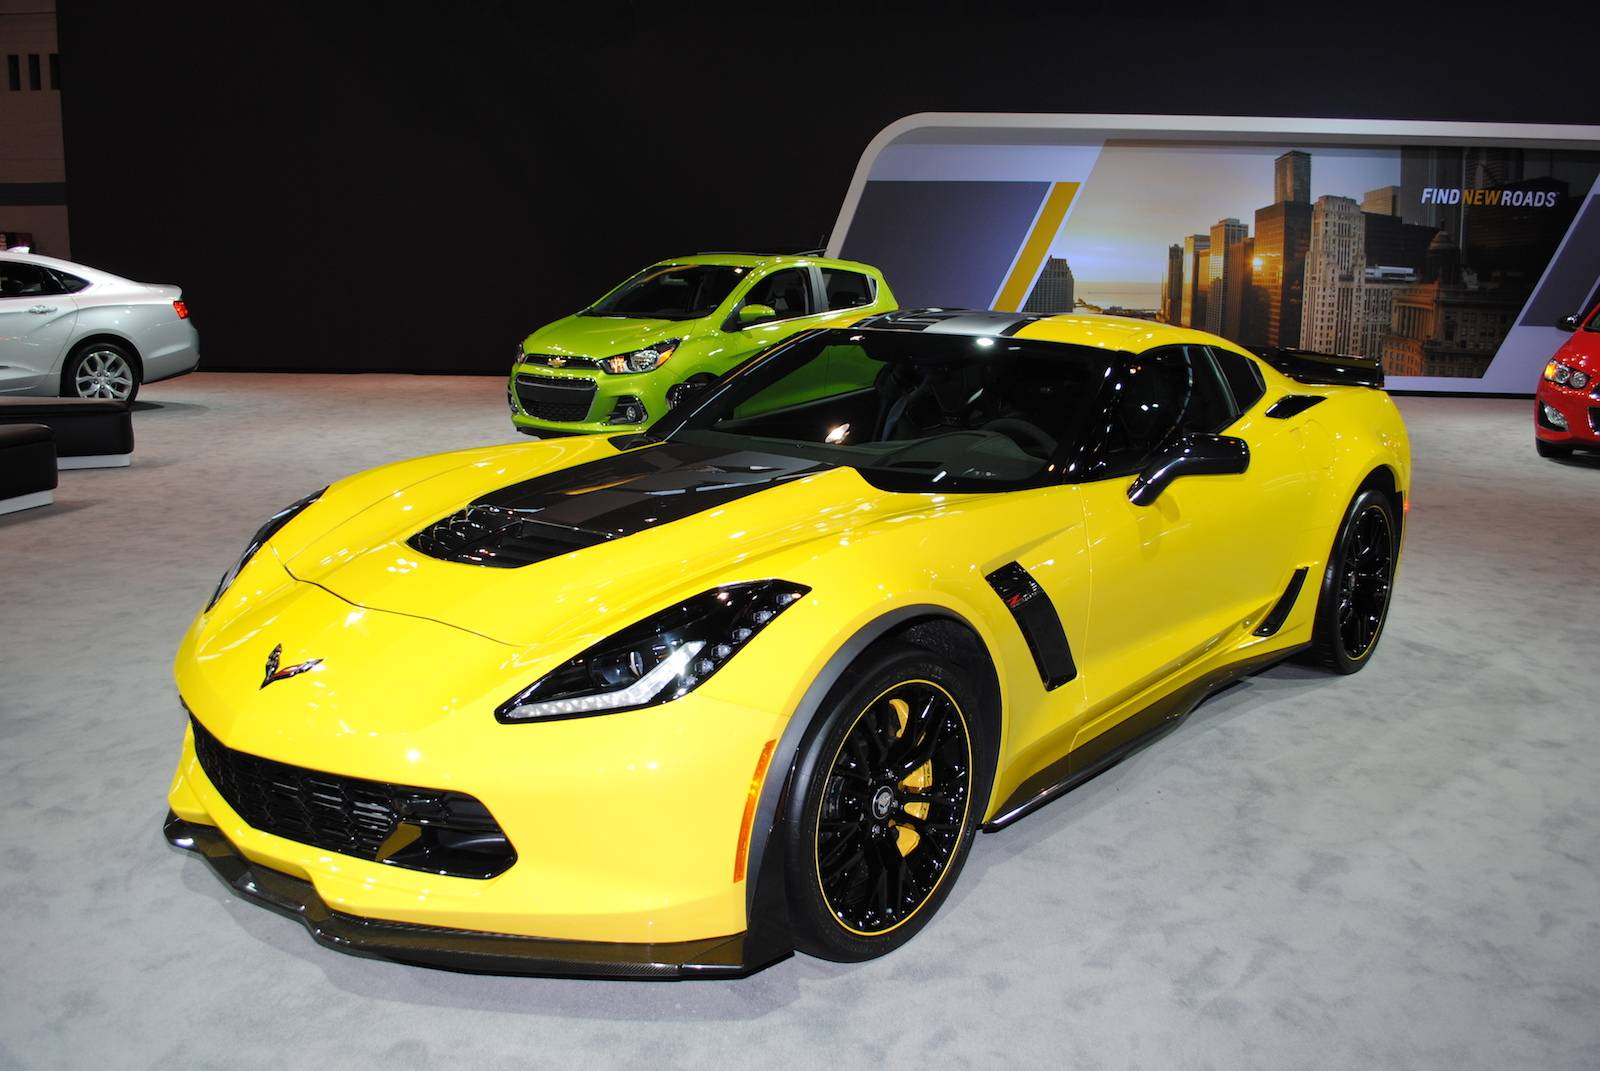 Gallery American Cars At Chicago Auto Show GTspirit - American sports cars 2016